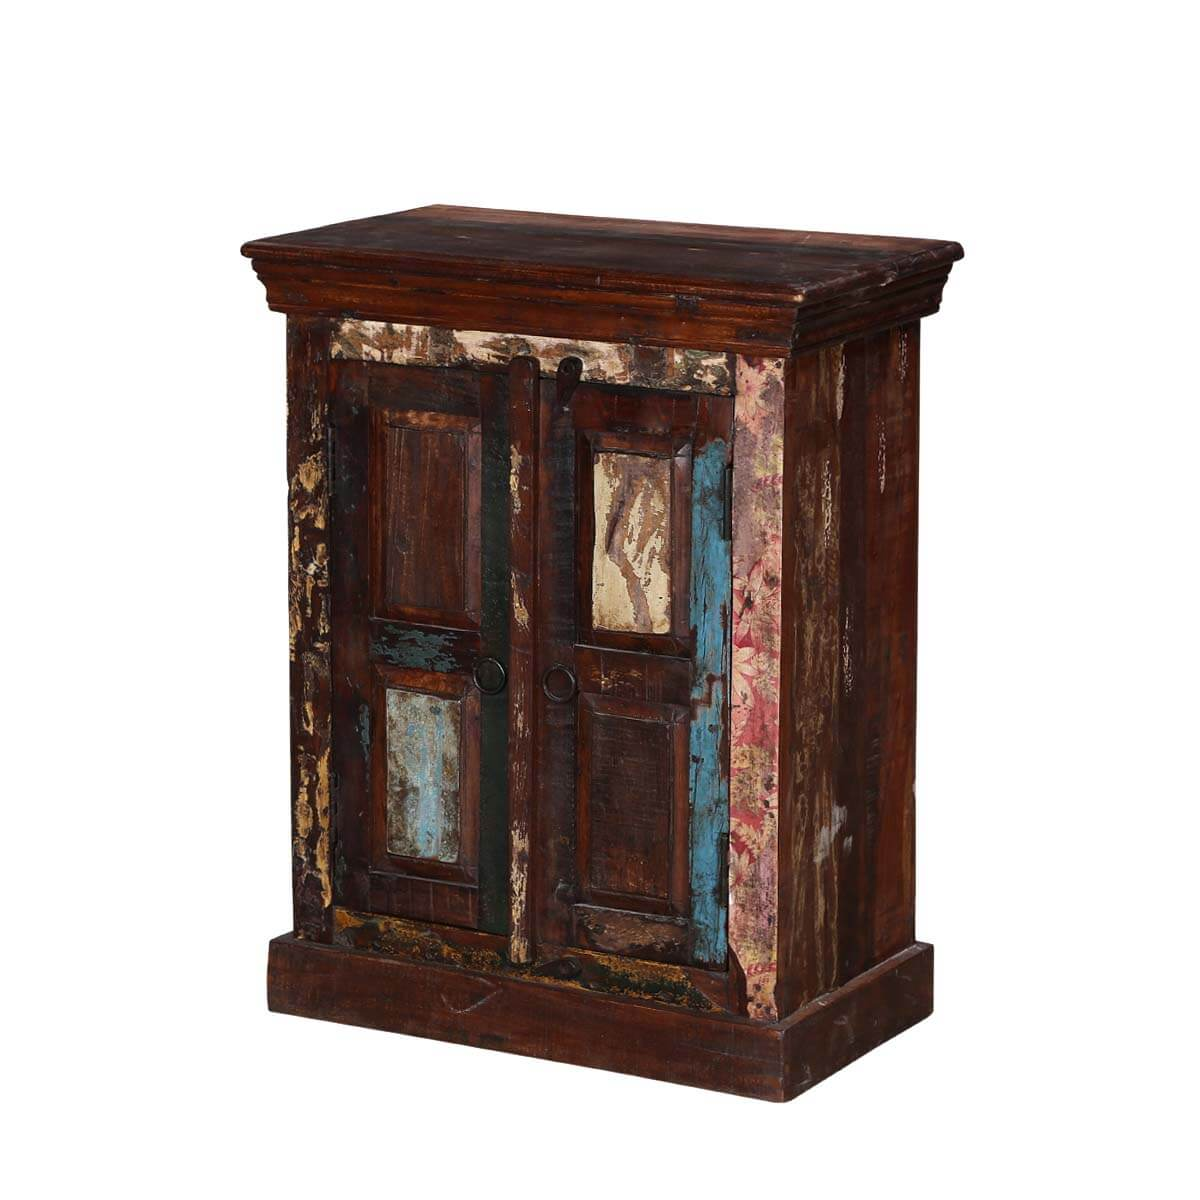 Turquoise trail 30 rustic reclaimed wood nightstand table for Rustic wood nightstand